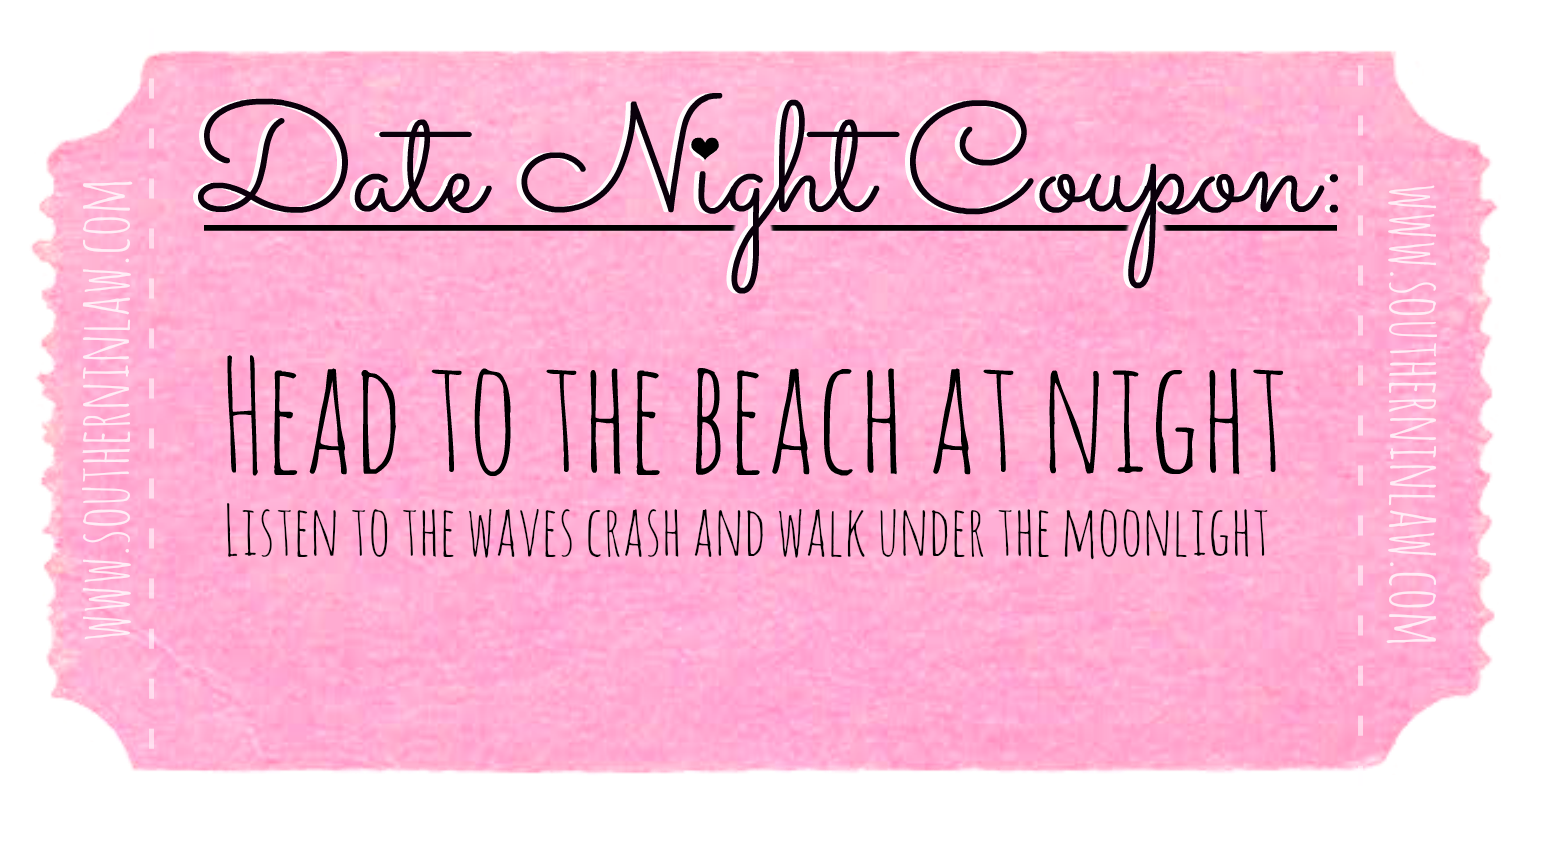 Affordable Date Ideas - Cheap Date Ideas Coupons - Head to the Beach at Night